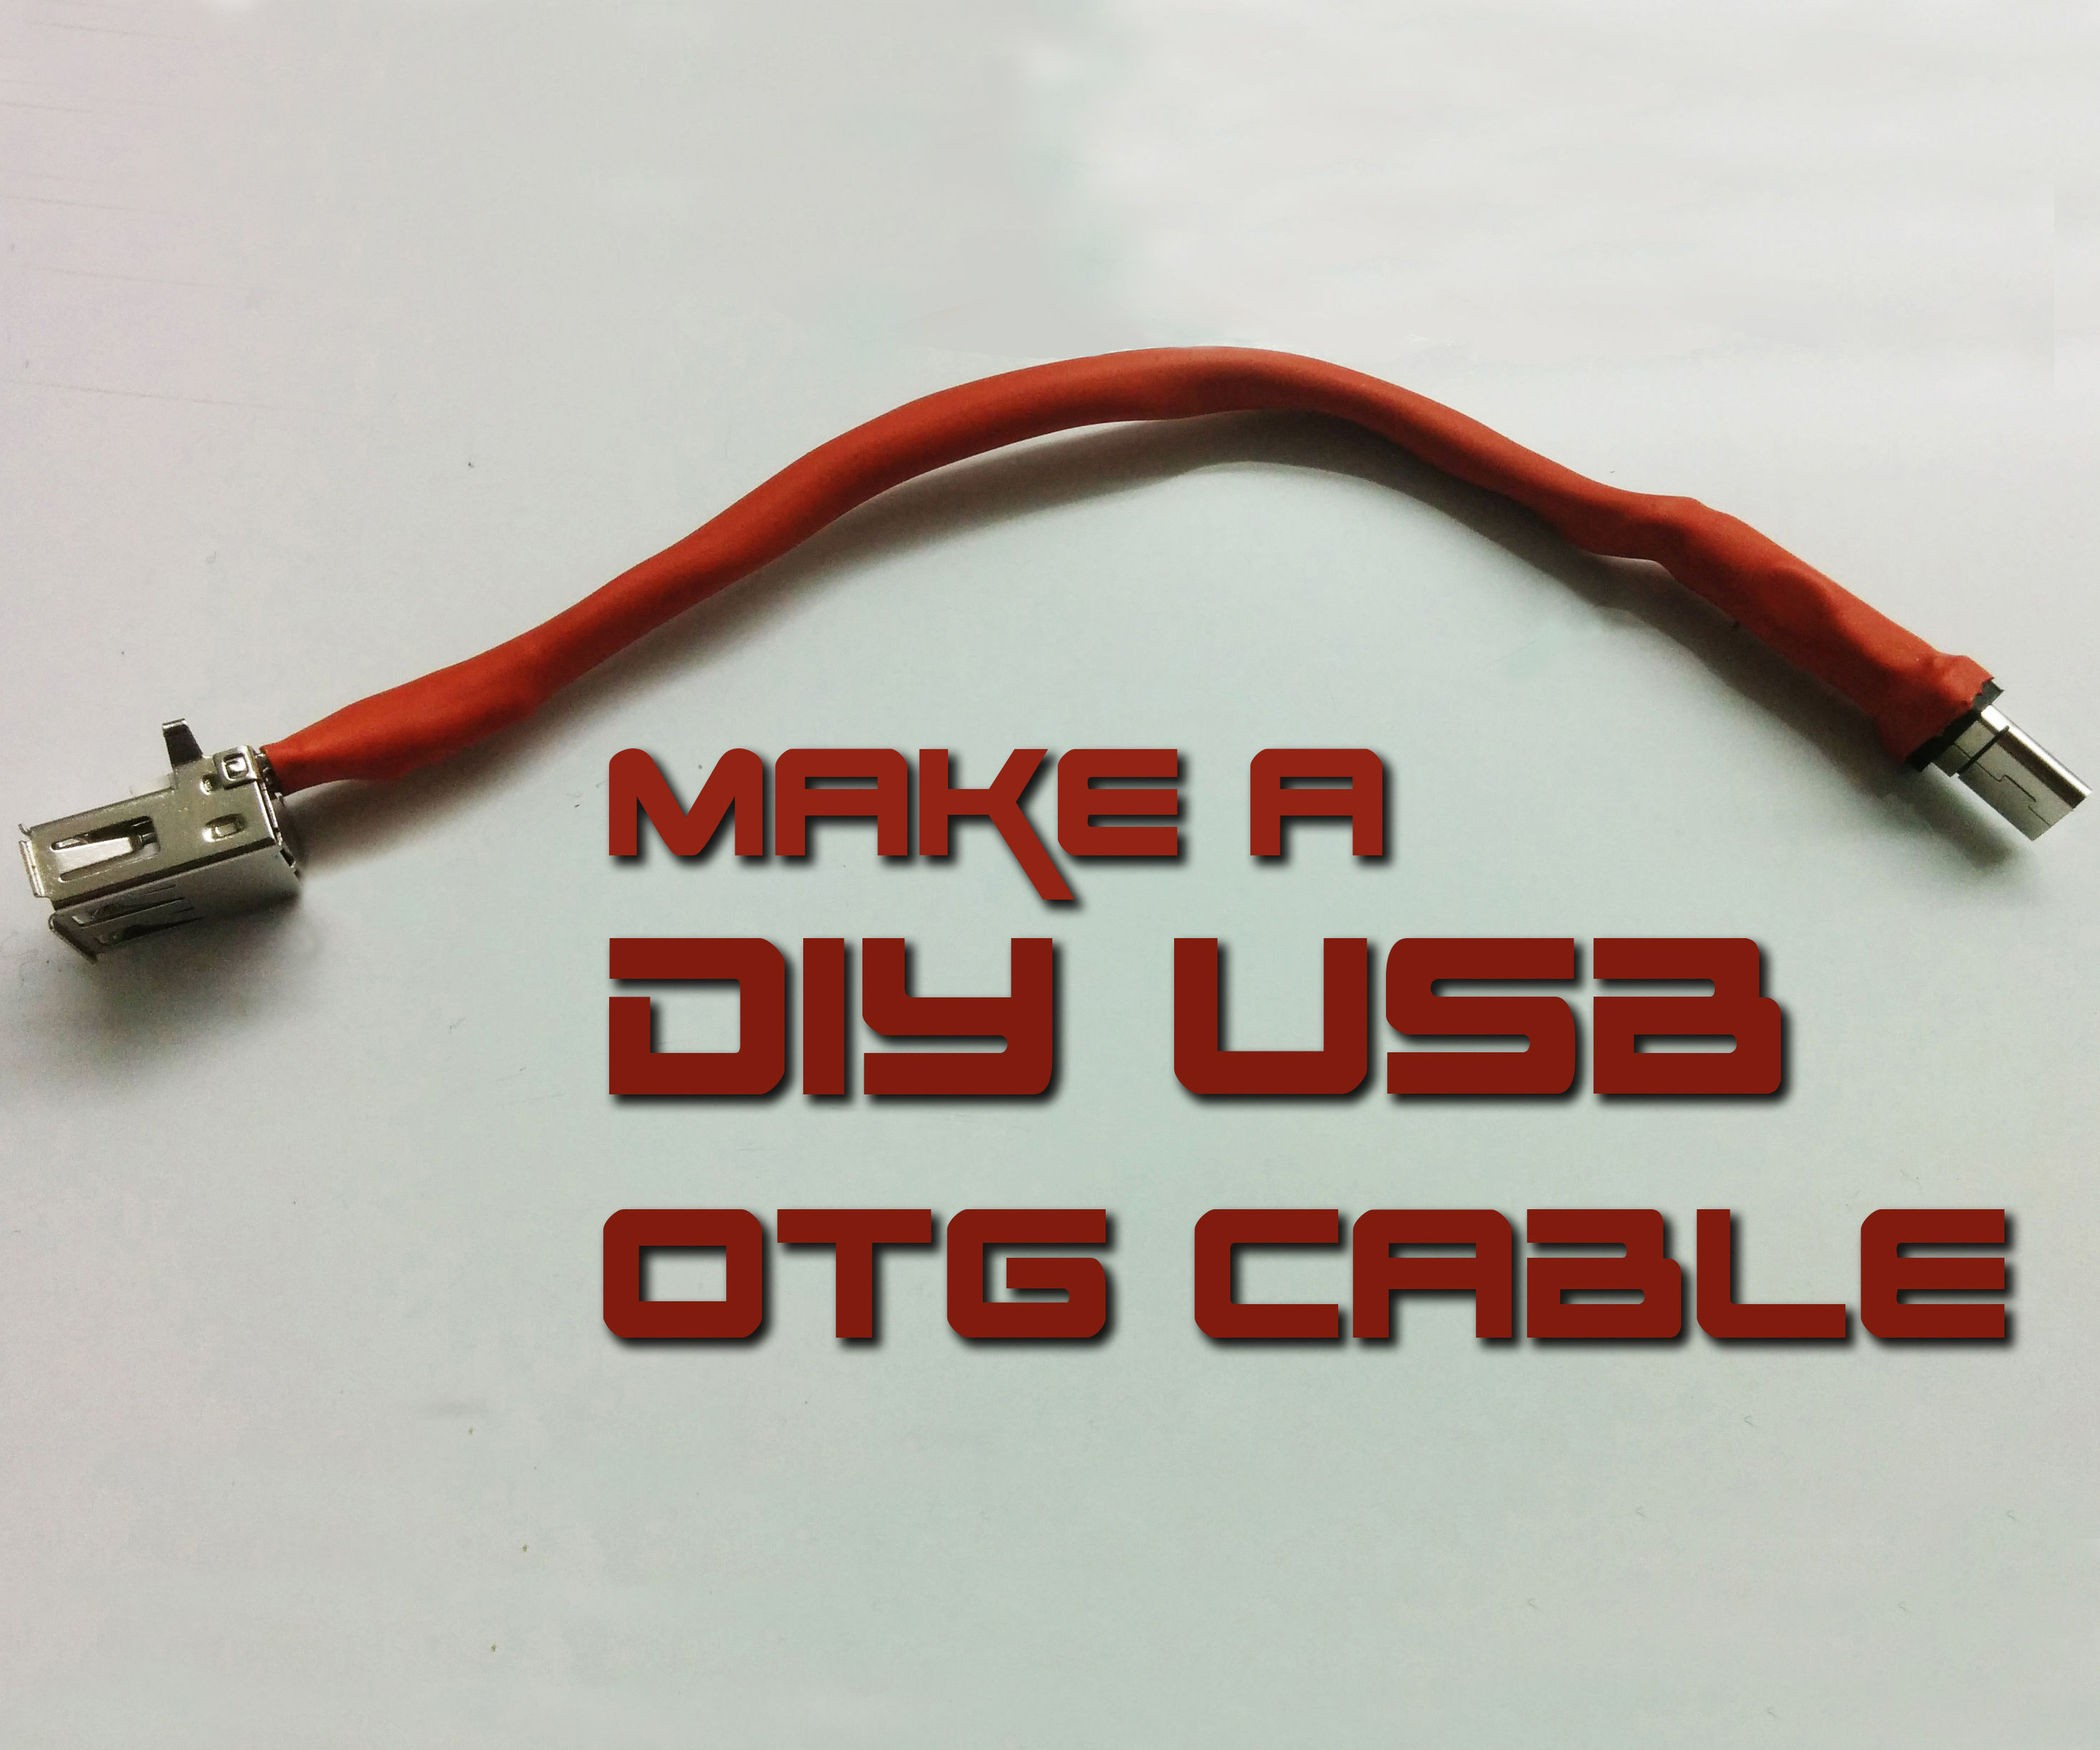 How To Make Usb Otg Cable Bluetooth Wiring Diagram Usb Coaxial Wiring Diagram